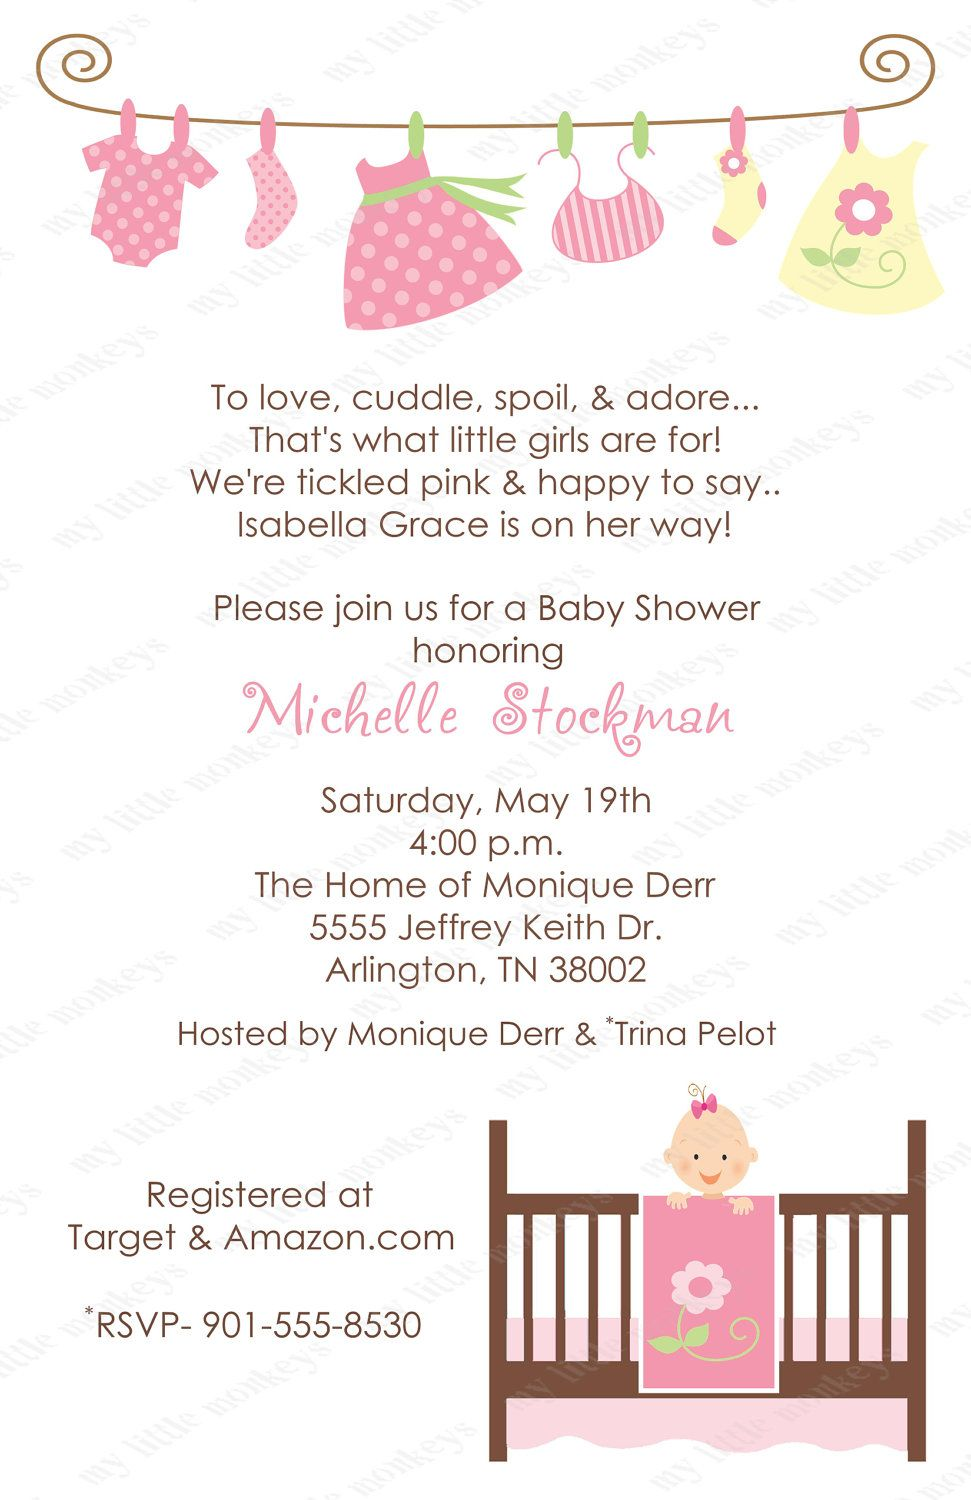 10 Twin Girls Baby Shower Invitations With By Bethcloud723 8 99 Baby Shower Invites For Girl Twin Girls Baby Shower Baby Shower Quotes